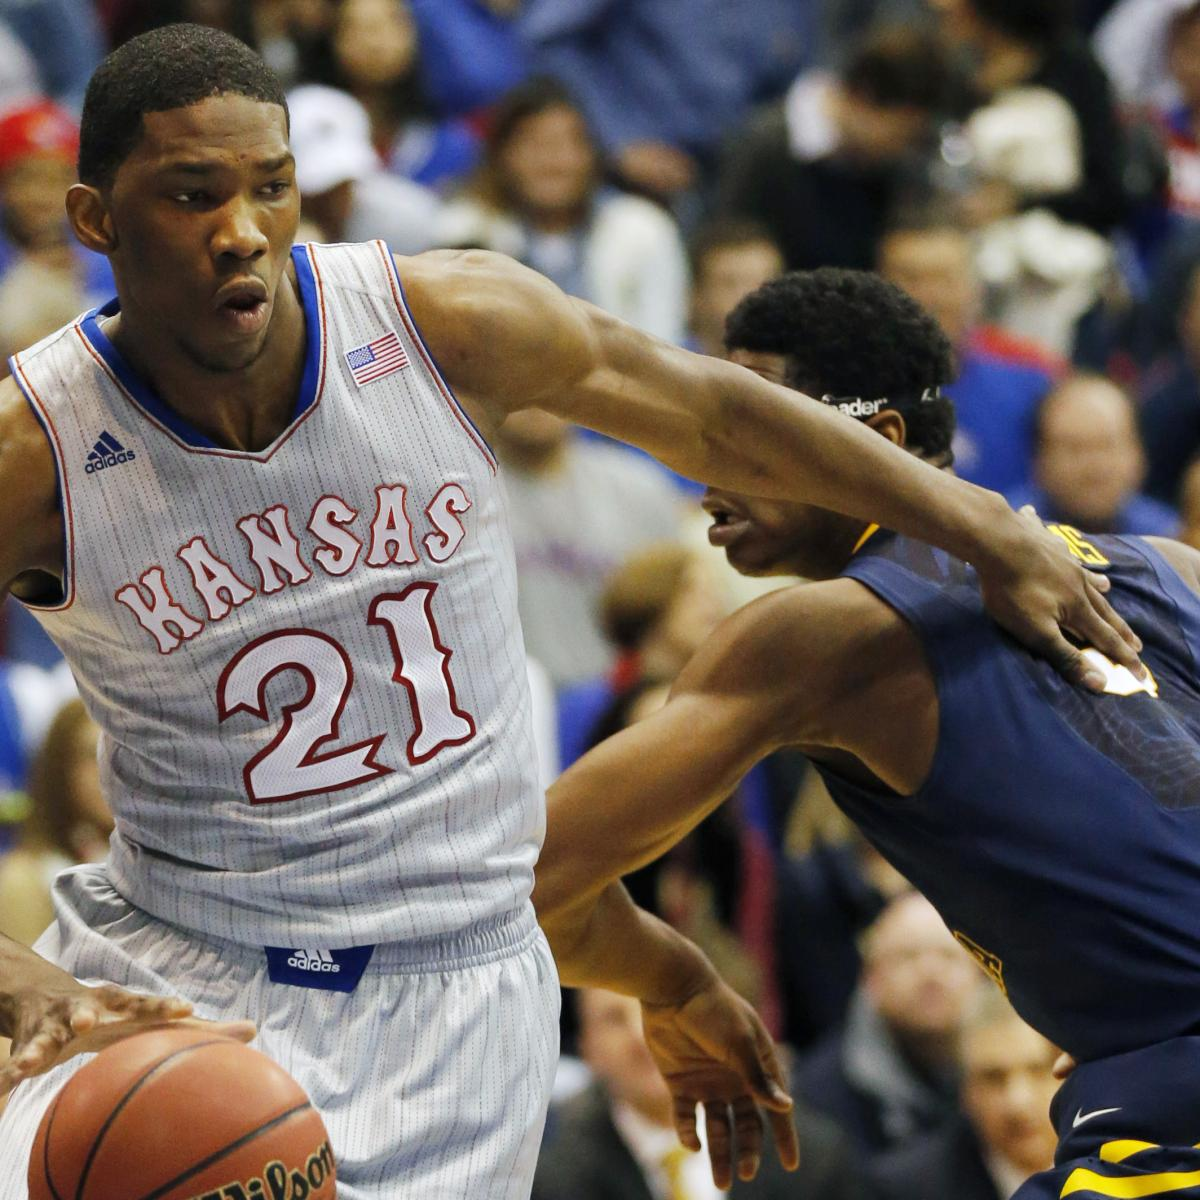 Joel Embiid NBA Draft 2014: Highlights, Scouting Report